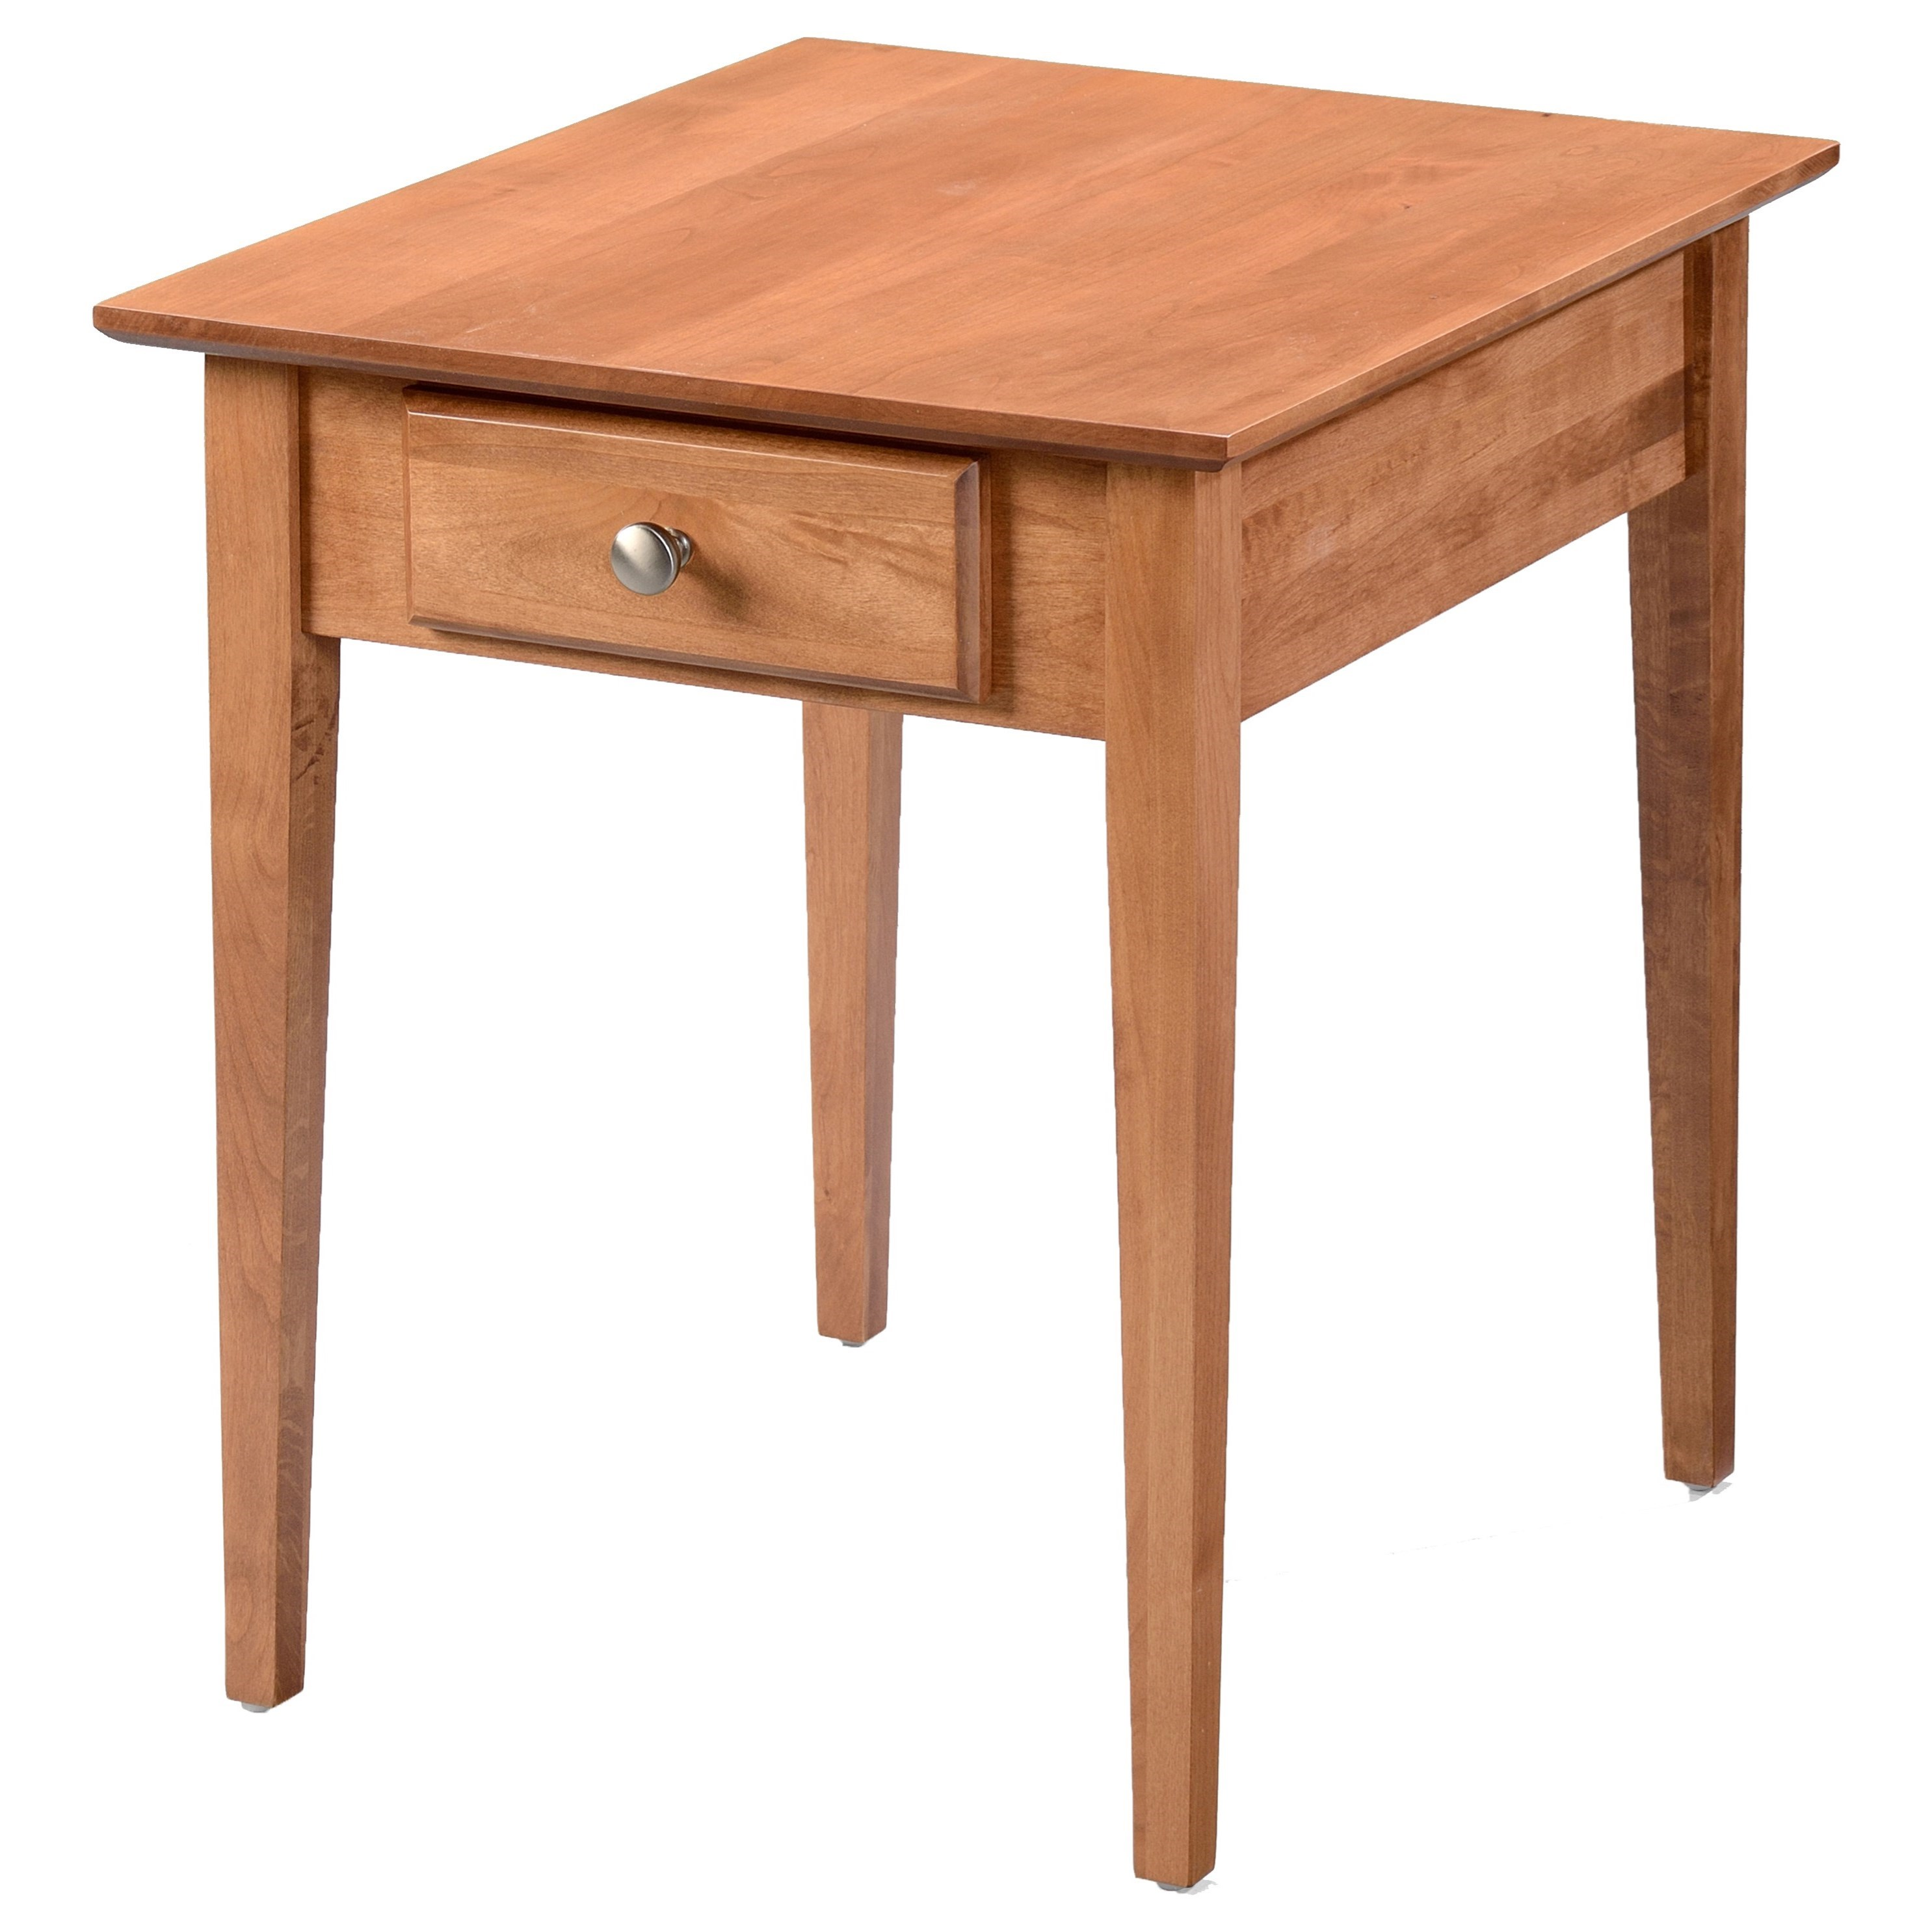 Alder Shaker Tables Large End Table by Archbold Furniture at Mueller Furniture